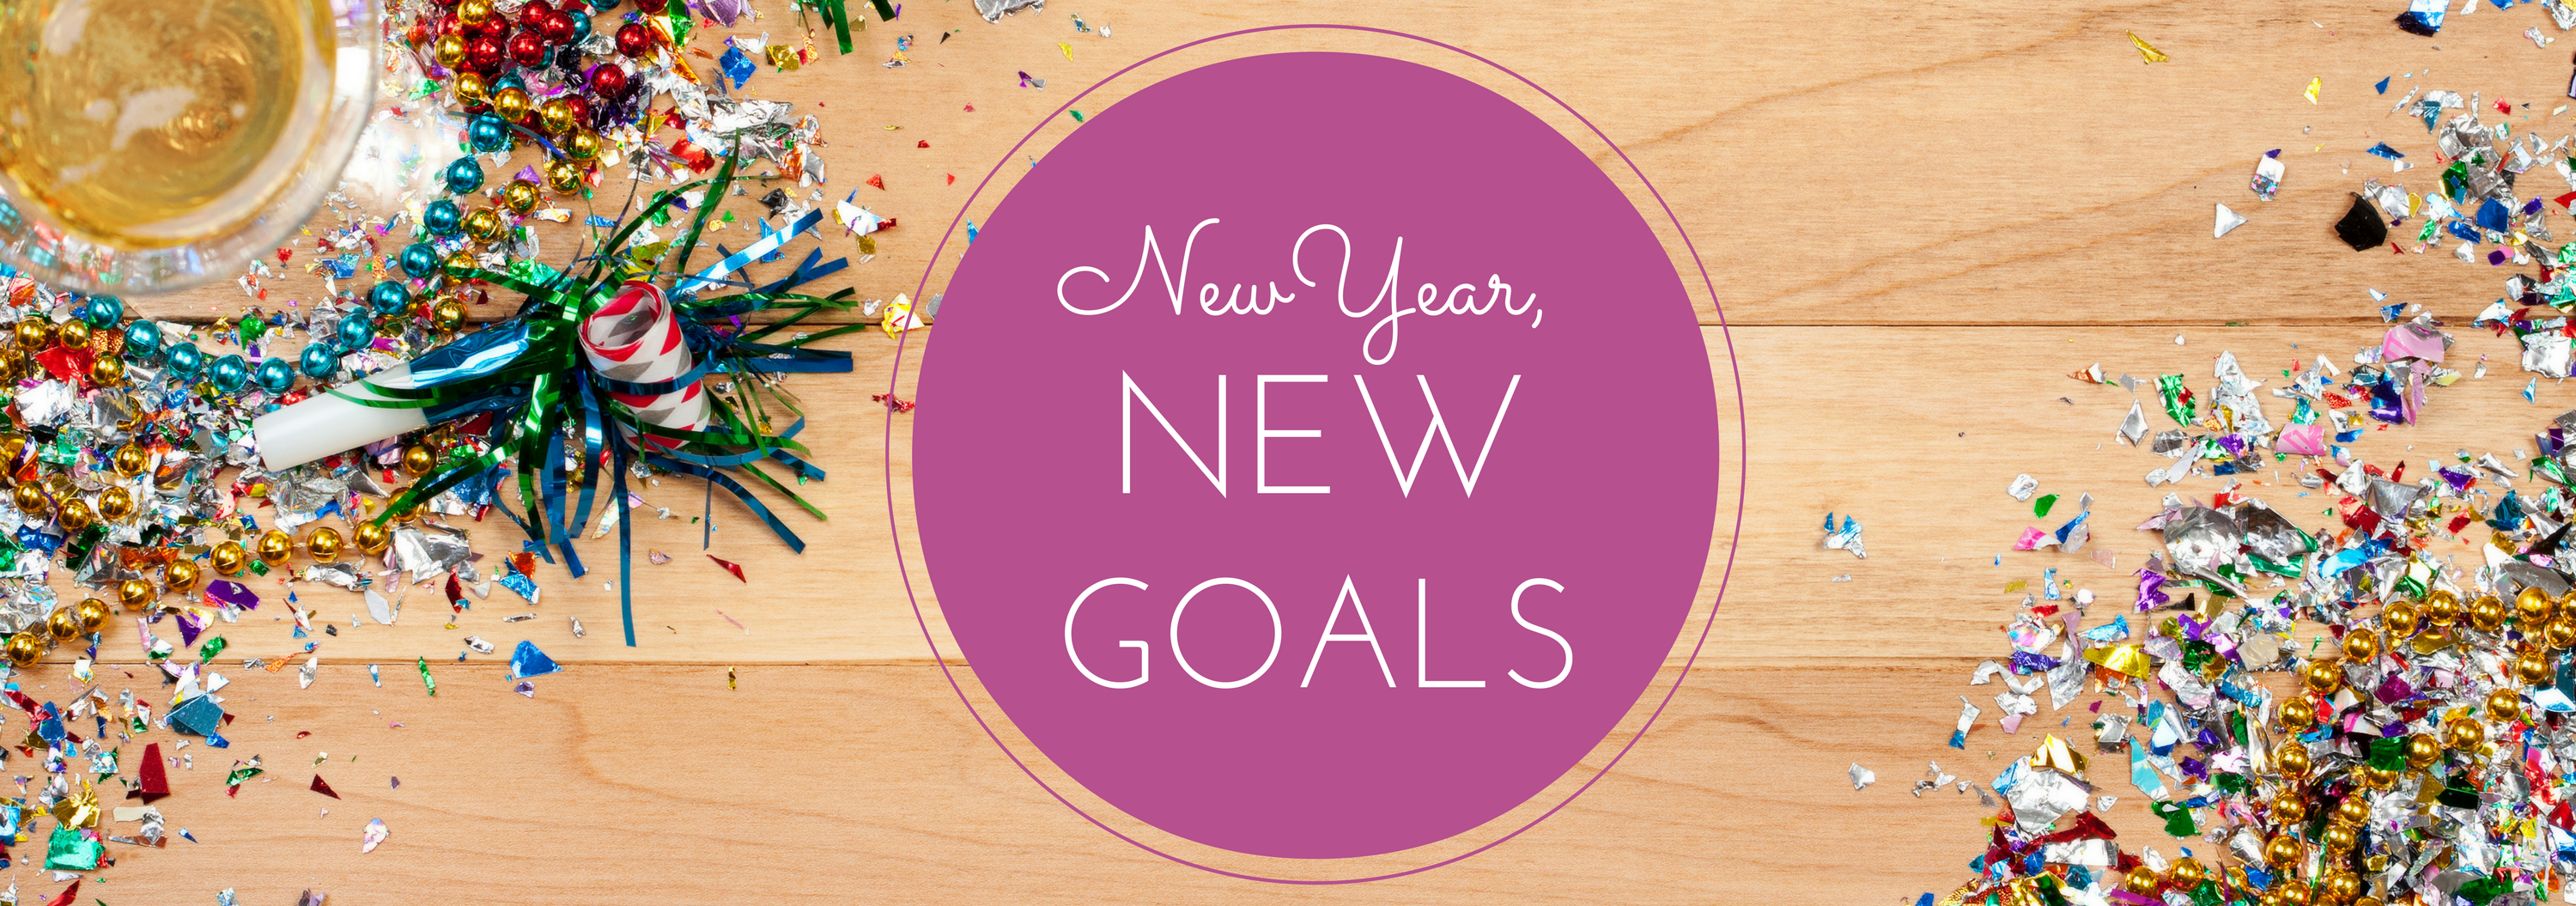 Start the New Year Right at Pinot's Palette